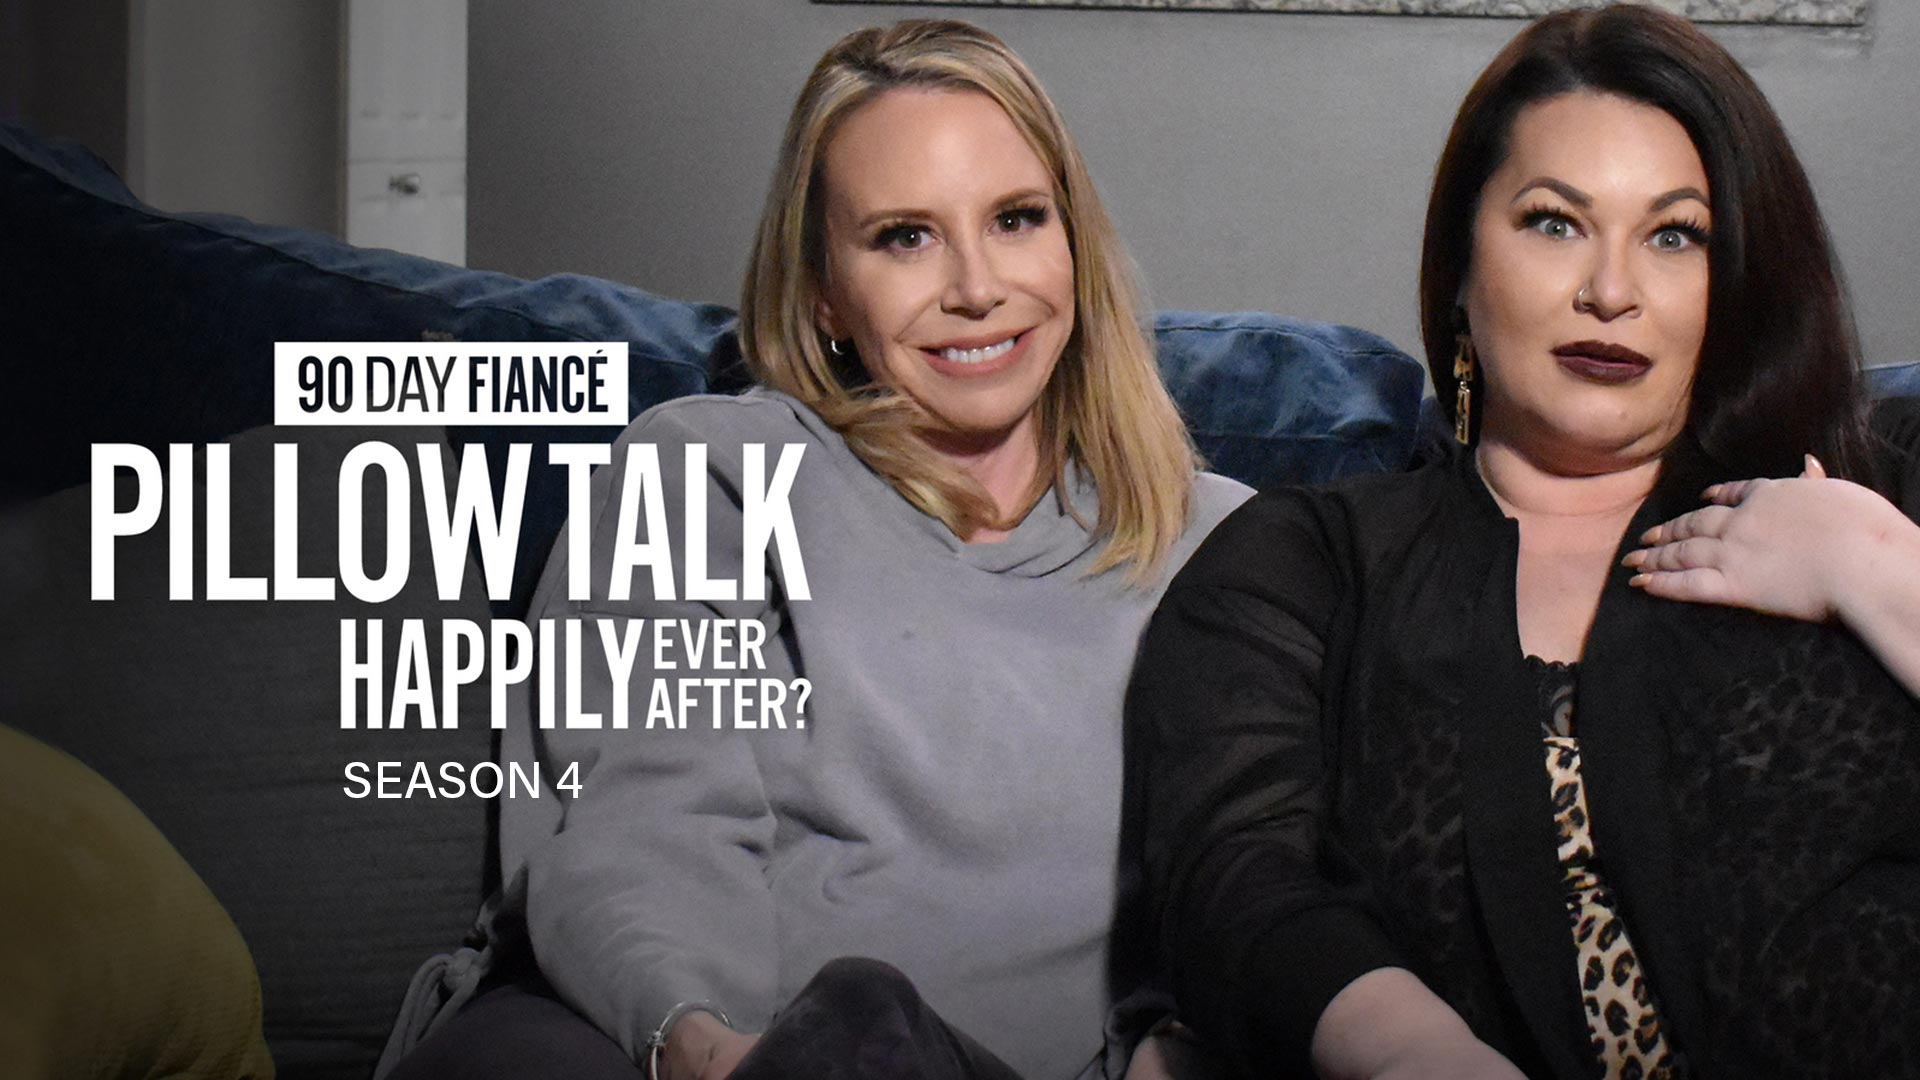 90 Day Pillow Talk: Happily Ever After? - Season 4